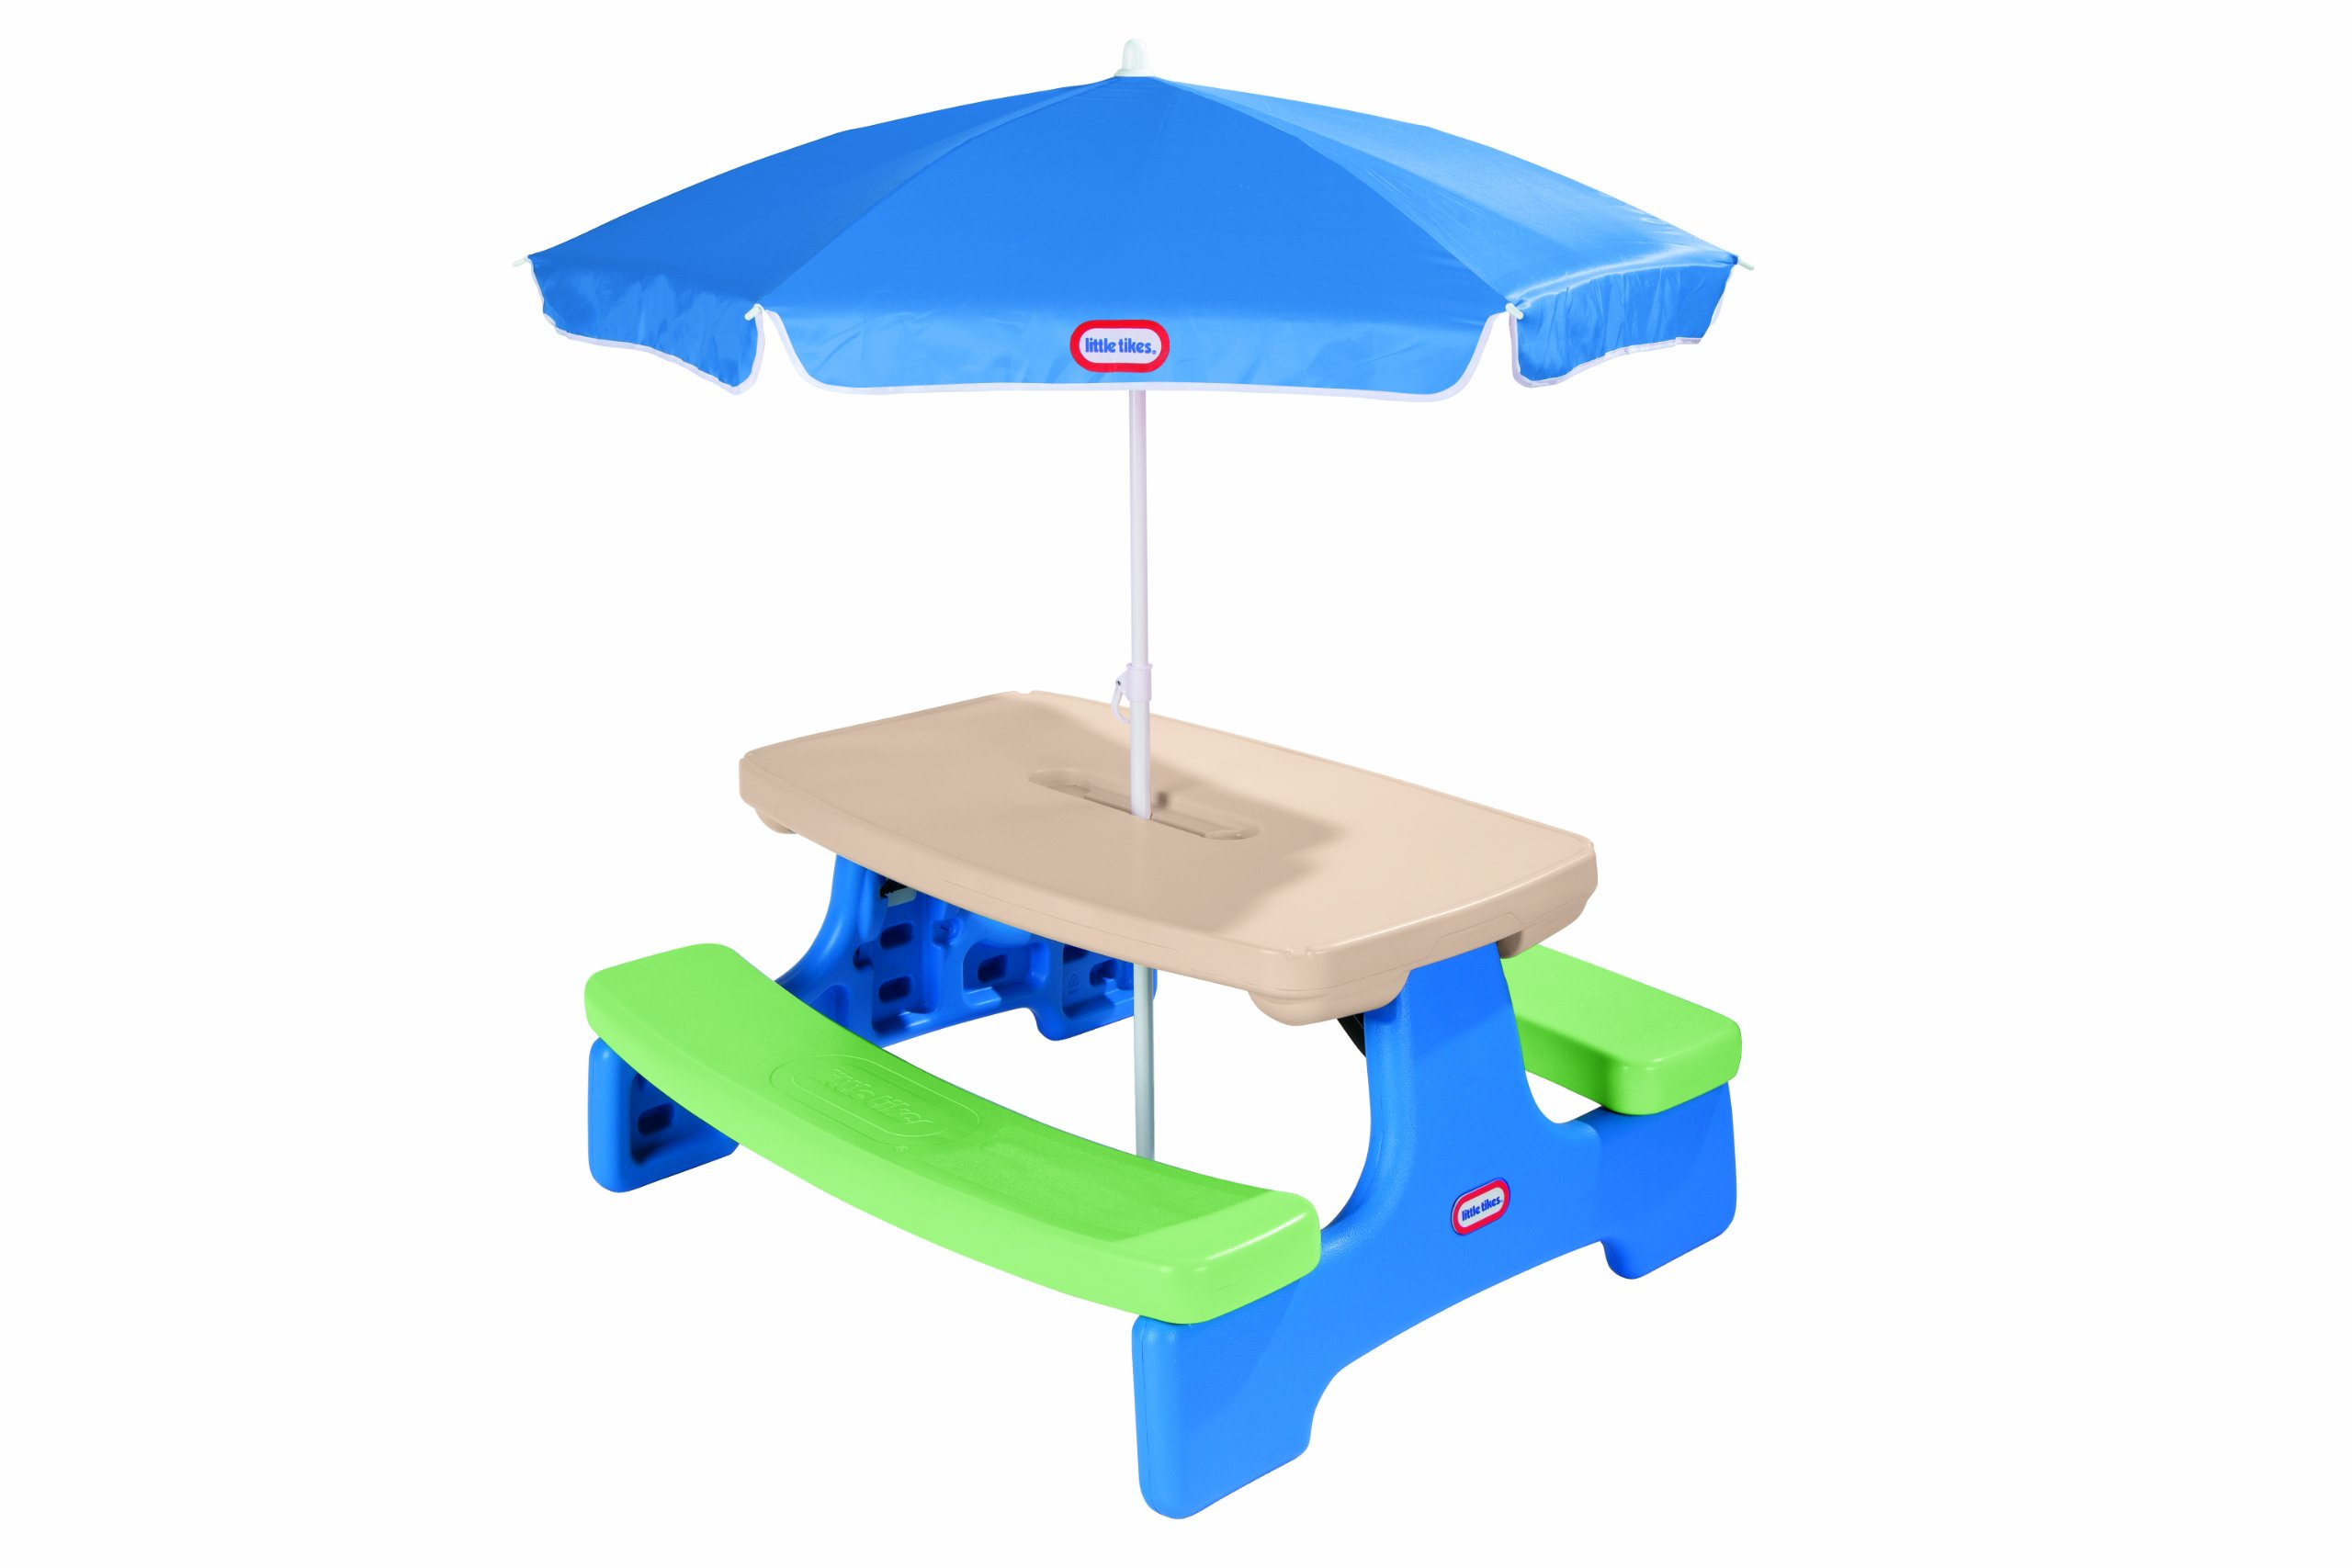 Umbrella For Picnic Table : Little Tikes Easy Store Picnic Table with Umbrella - Child Size